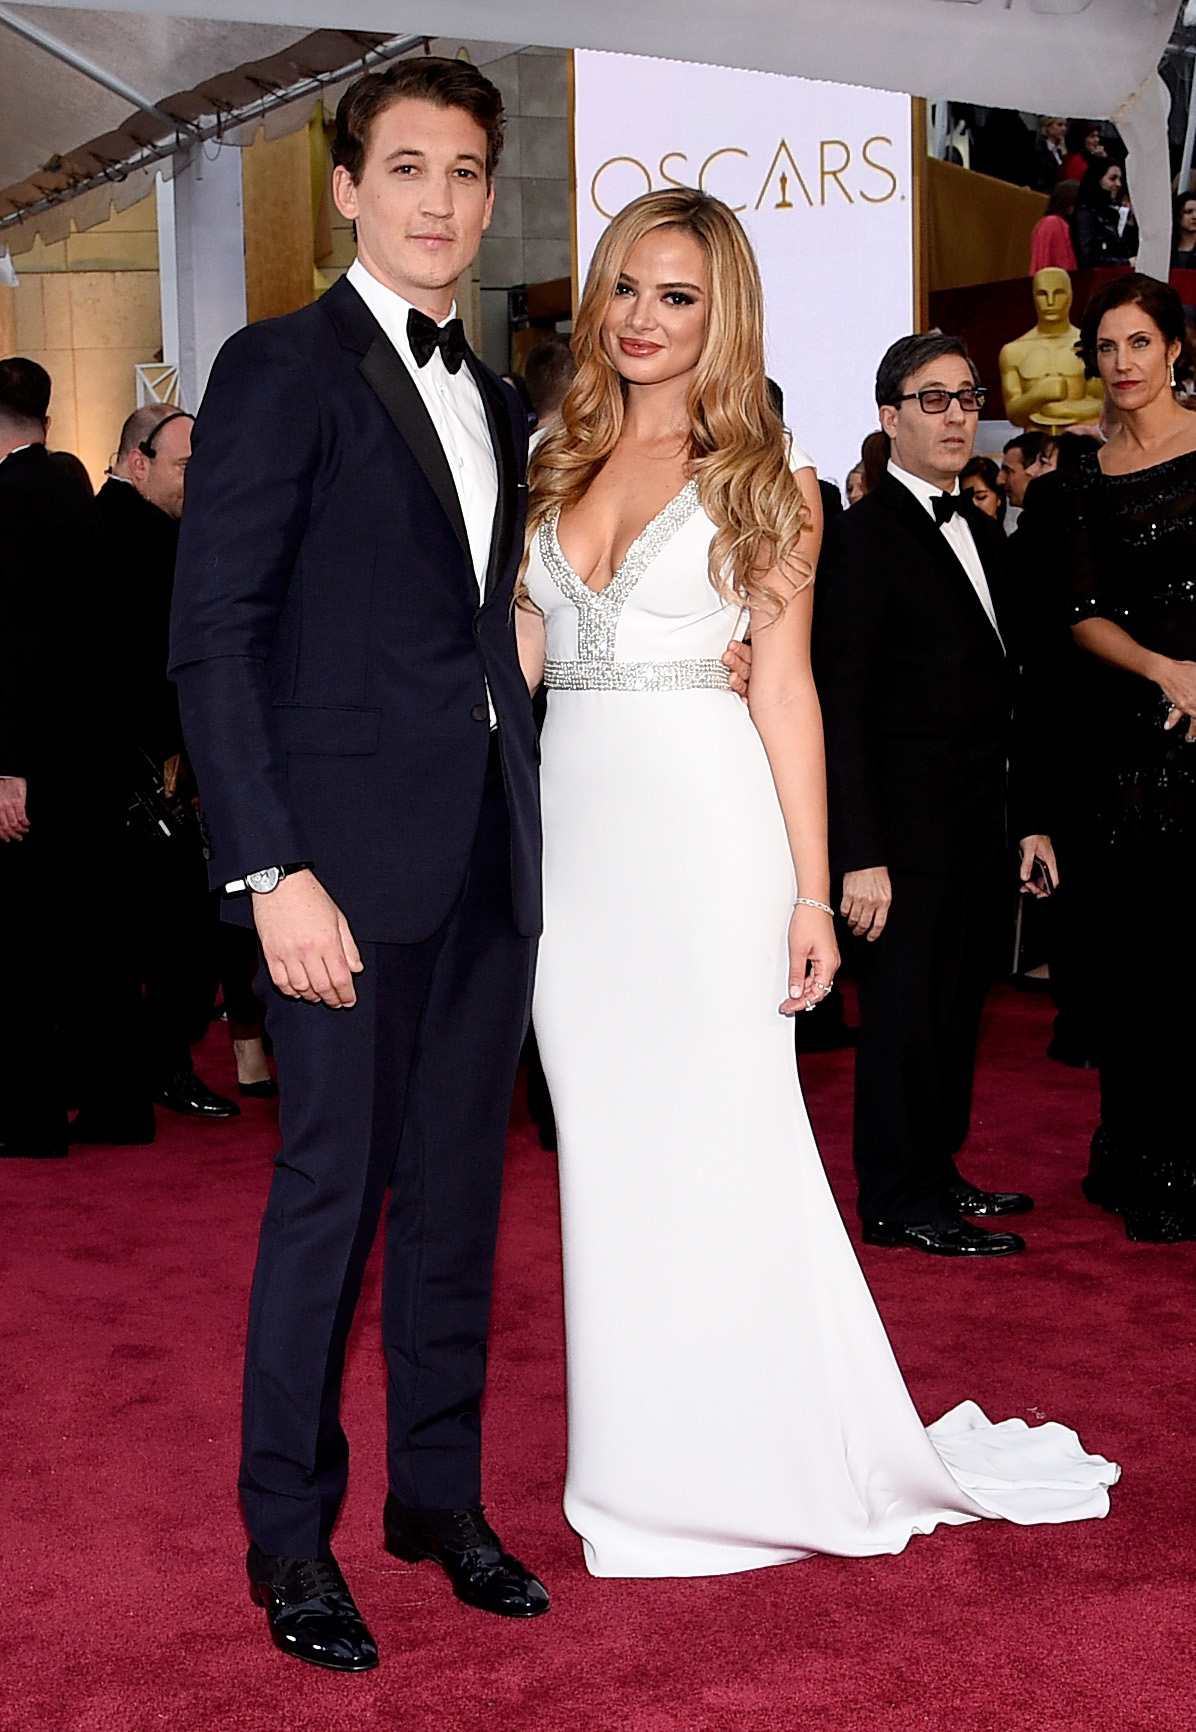 Miles Teller and Keleigh Sperry at the 2015 Academy Awards (Photo: Getty).